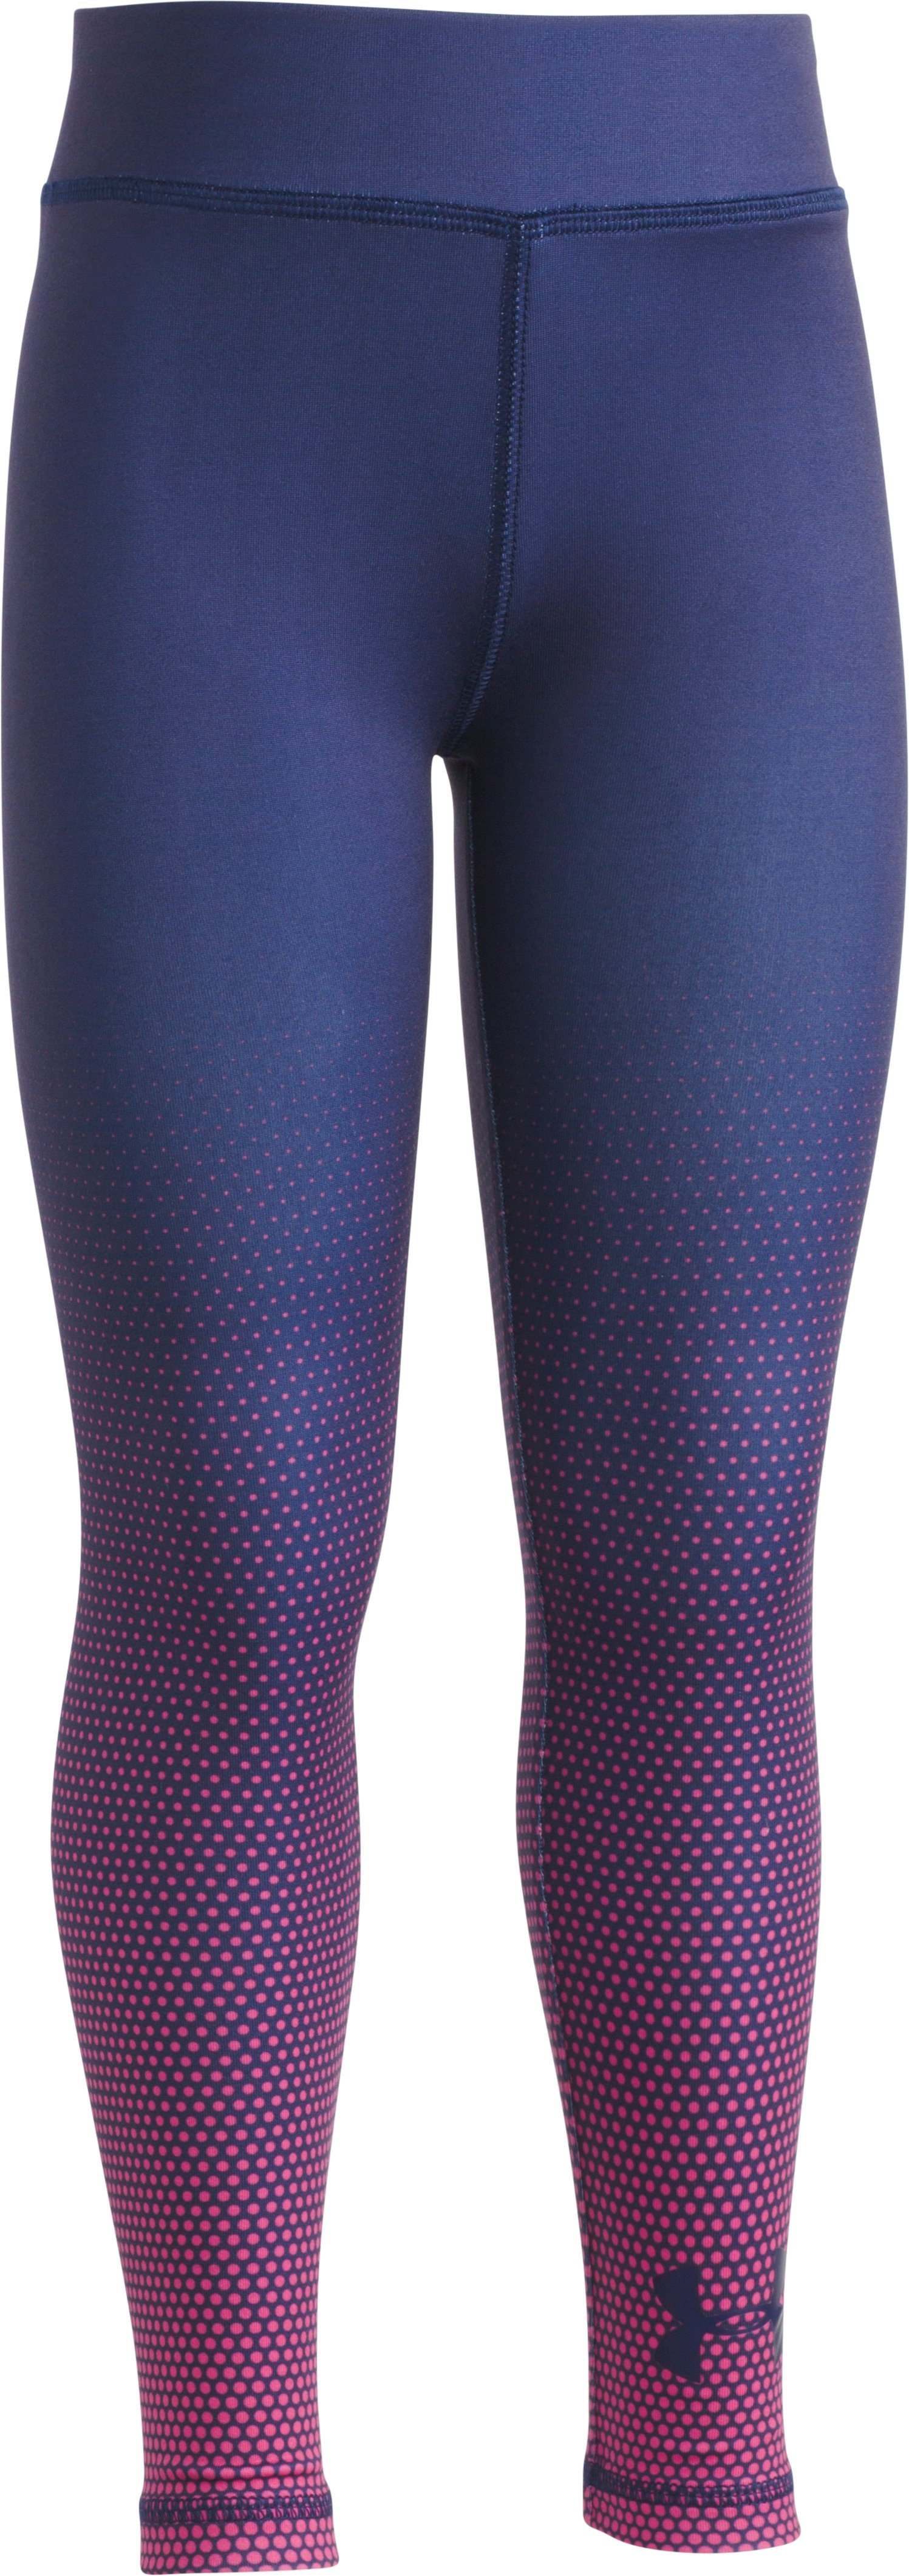 Girls' Toddler UA Fast Track Leggings, Midnight Navy